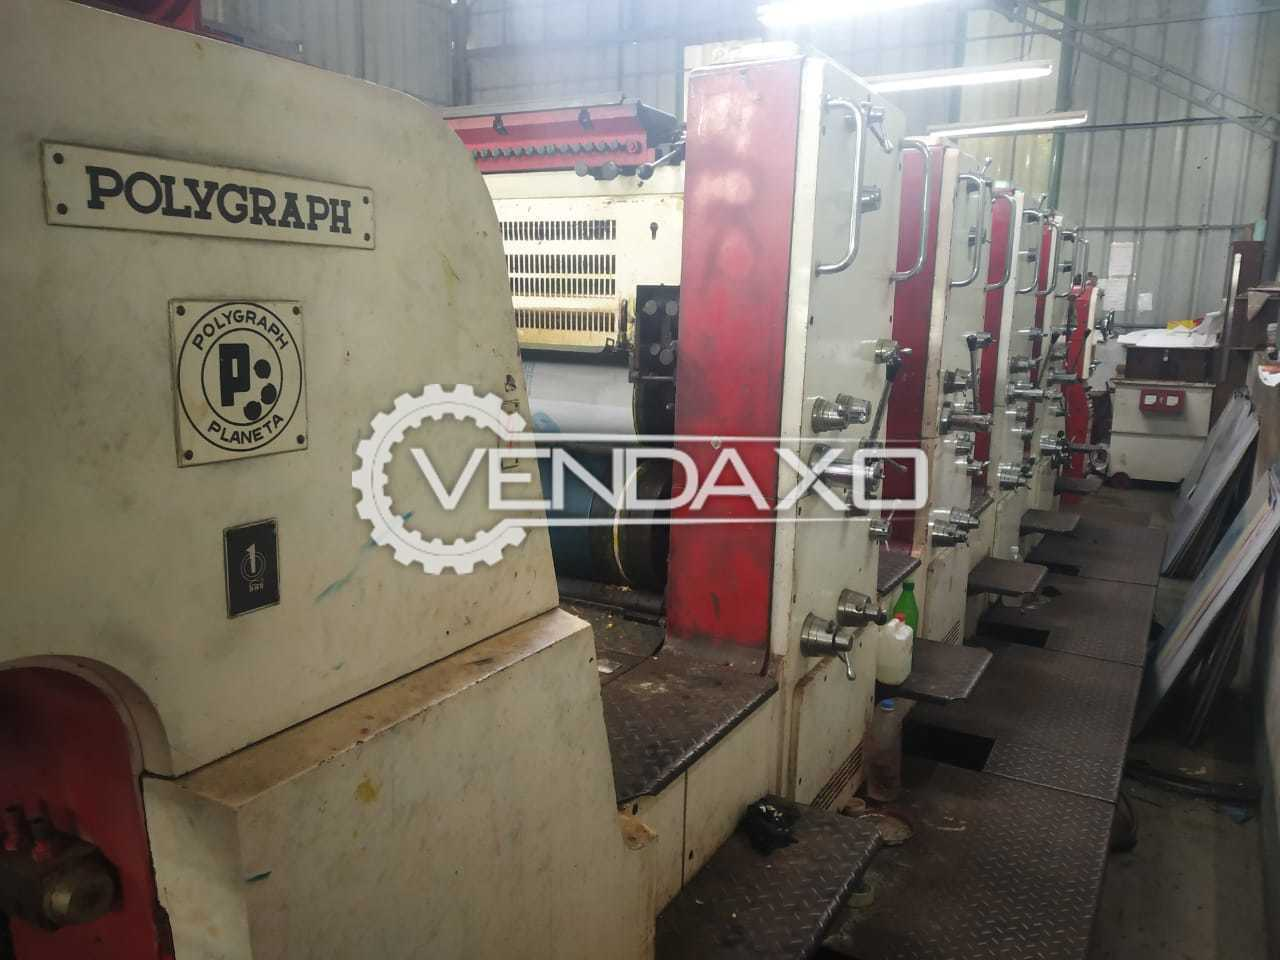 Polygraph Variant Offset Printing Machine - 28 x 40 Inch, 4 Color